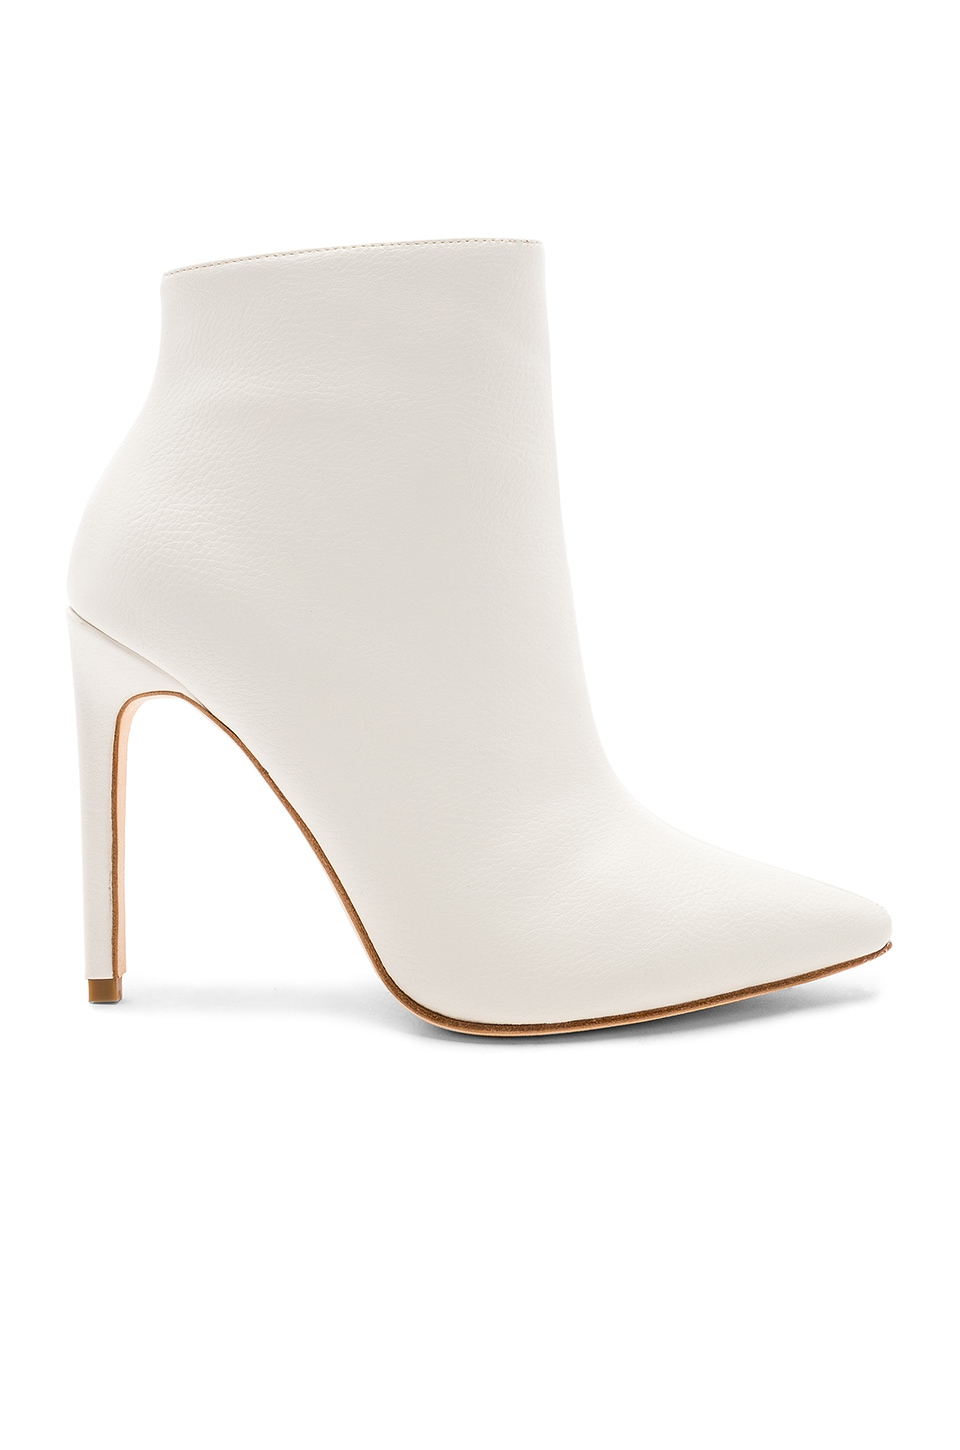 RAYE Congo Boot in White